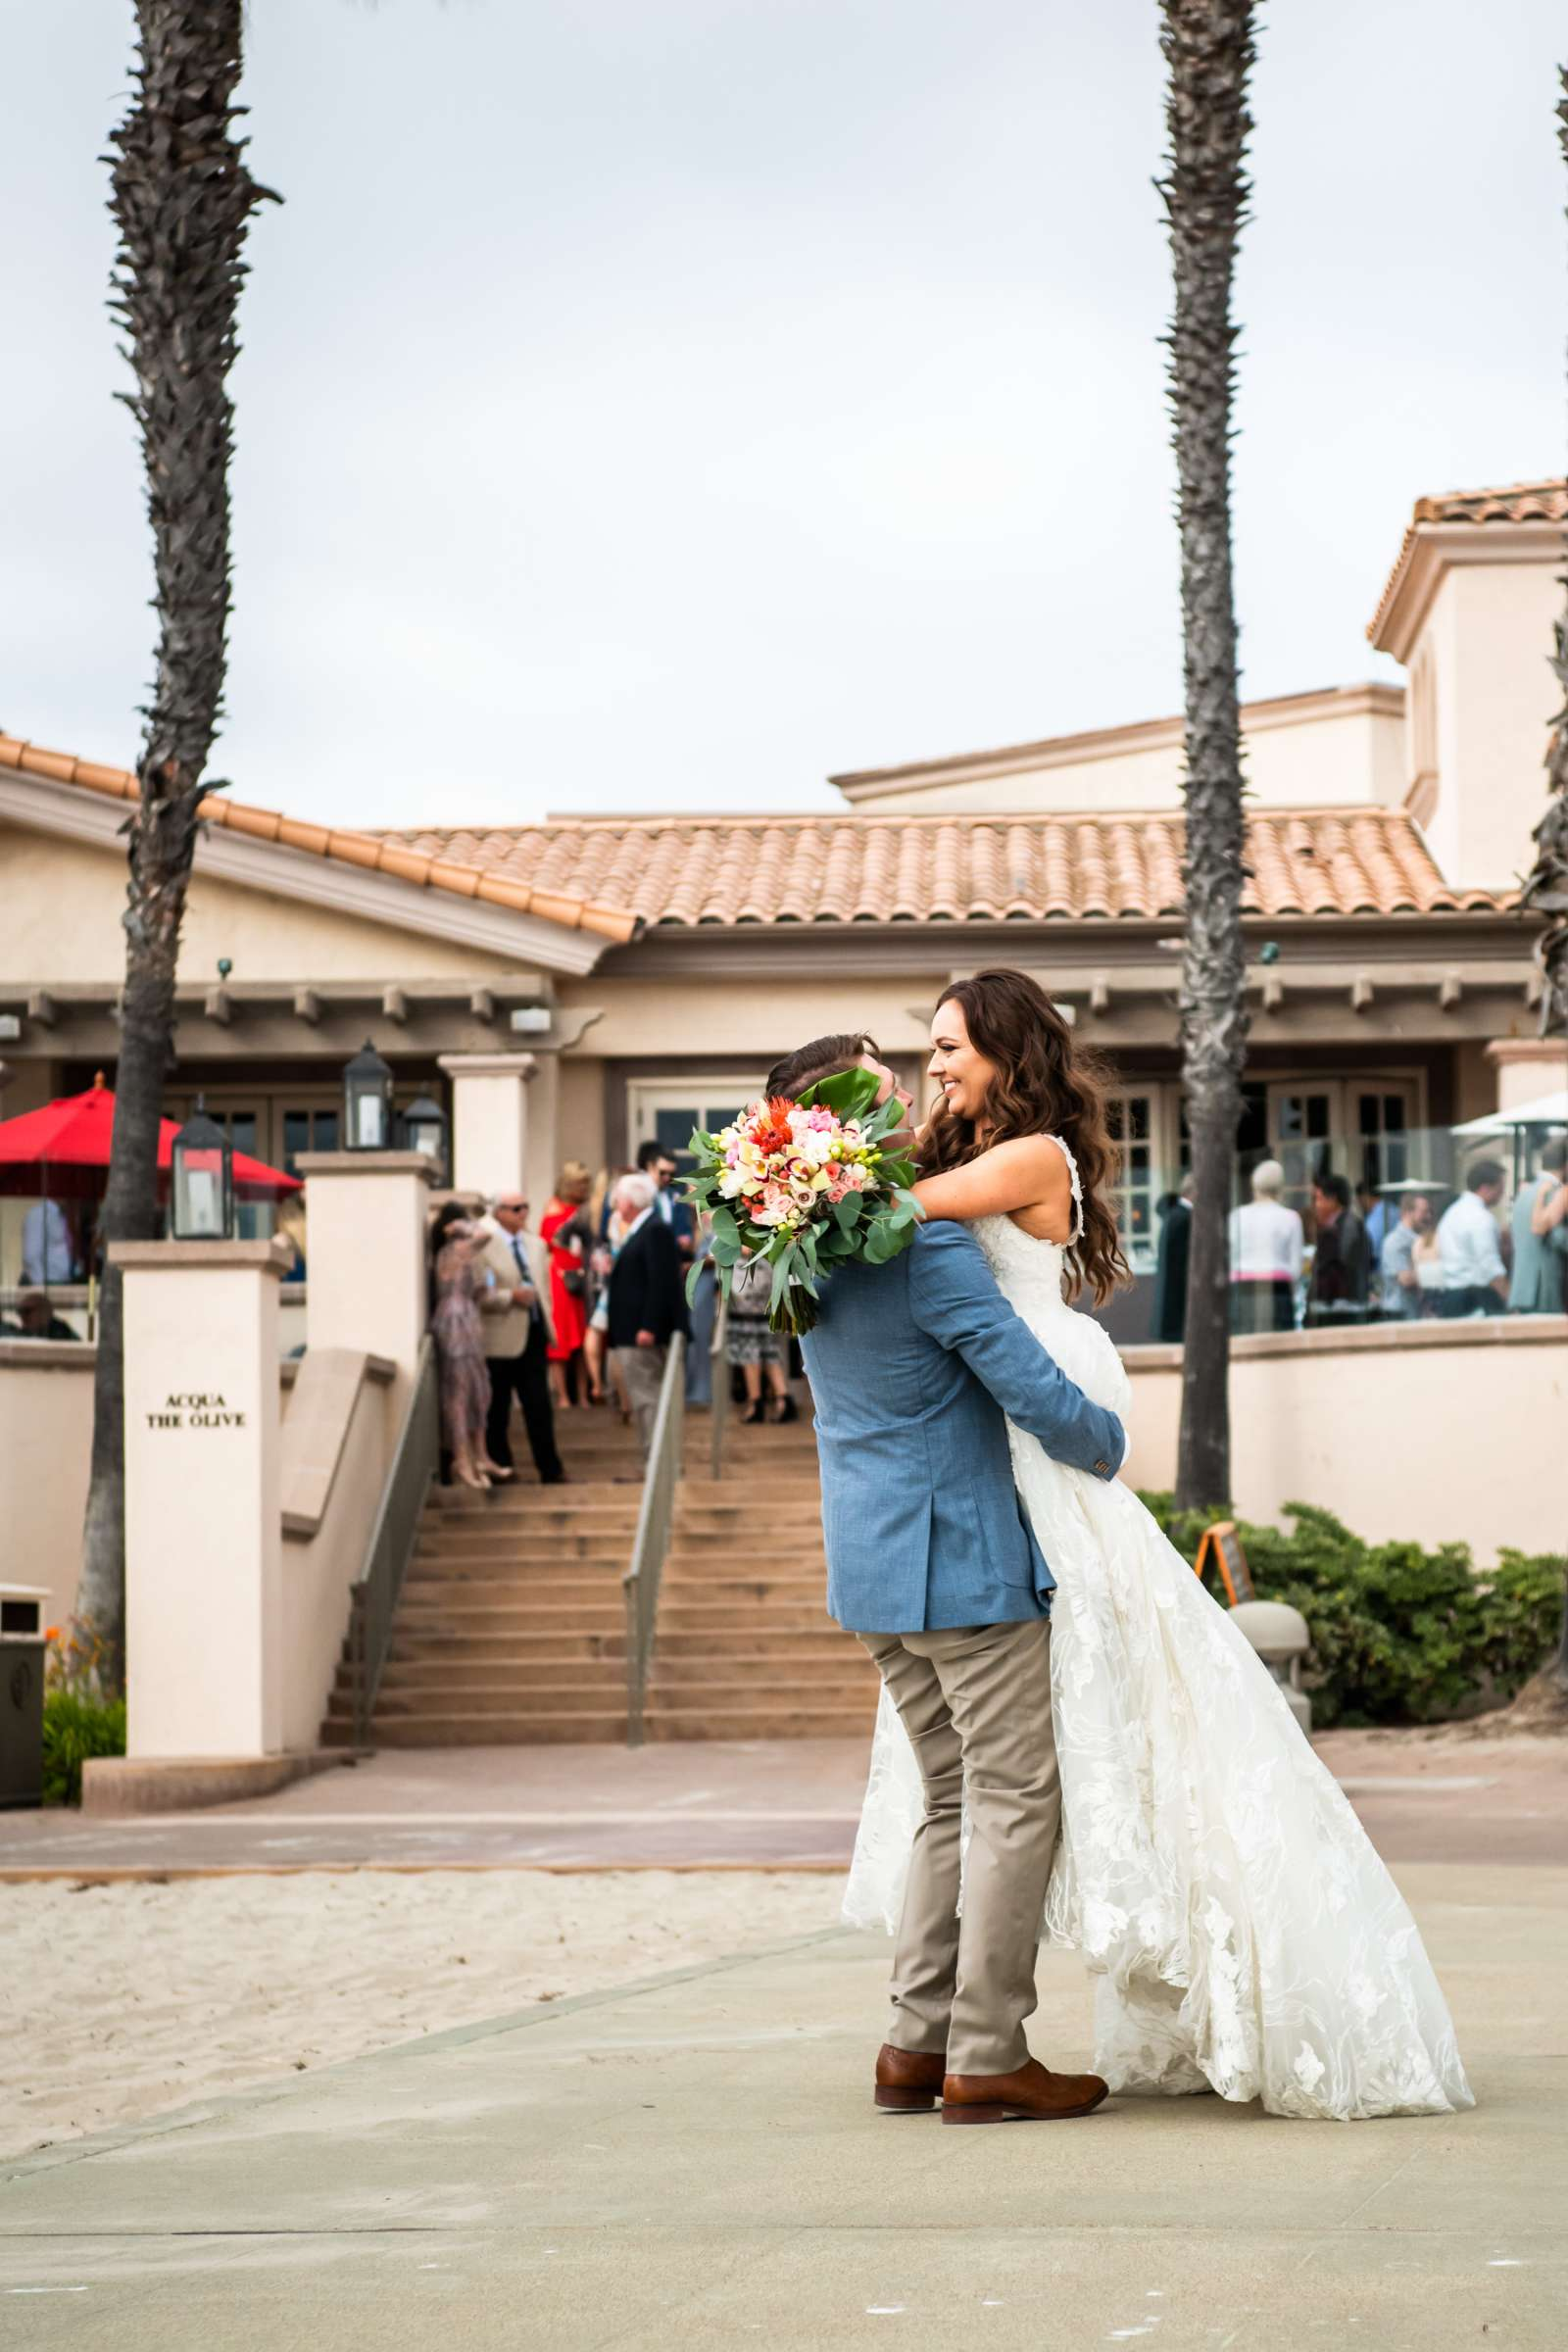 San Diego Mission Bay Resort Wedding coordinated by Cafe Au Love, Lauren and Adam Wedding Photo #3 by True Photography